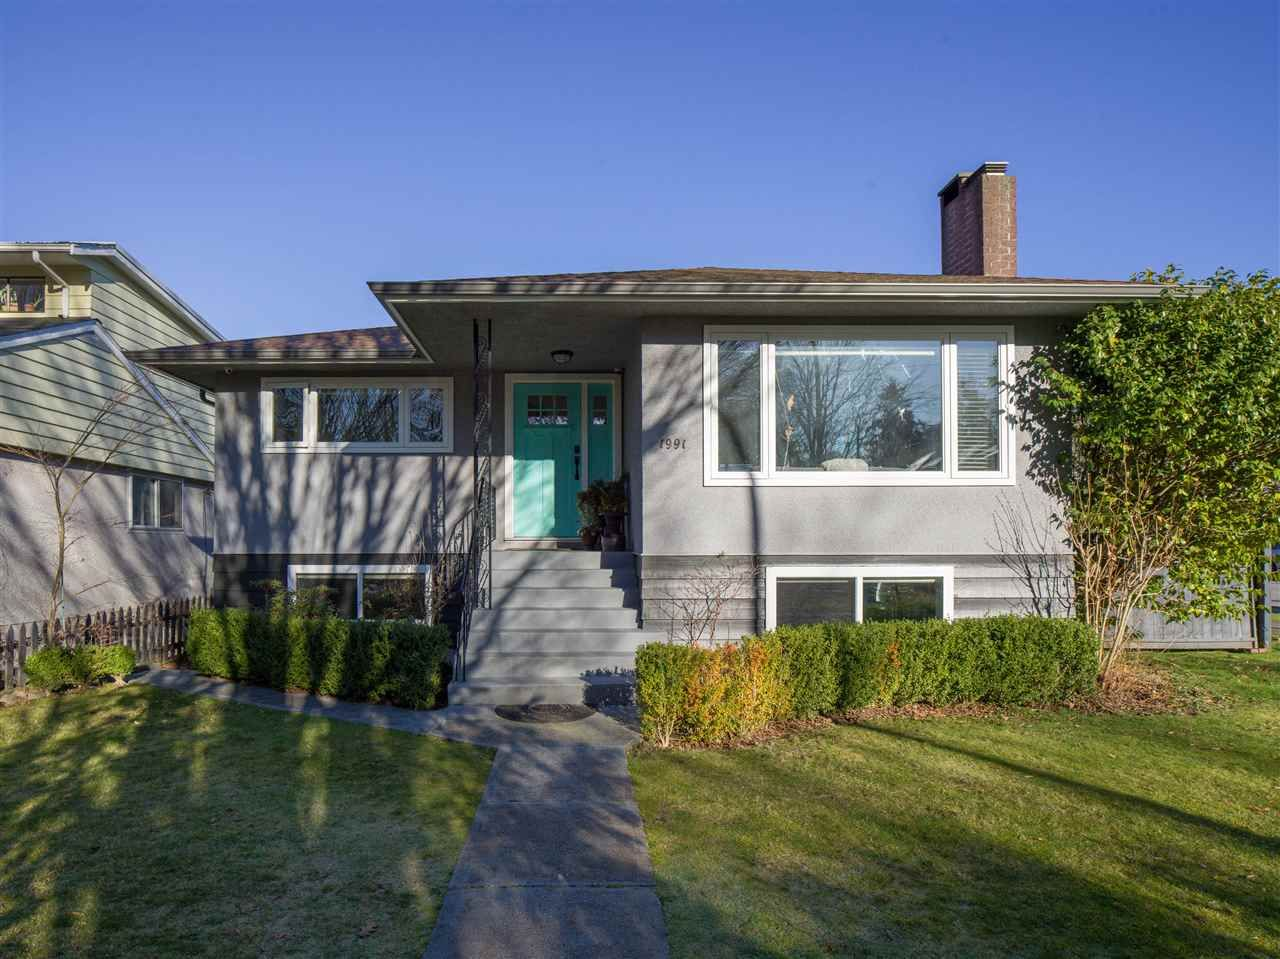 Main Photo: 1991 E 2ND Avenue in Vancouver: Grandview Woodland House for sale (Vancouver East)  : MLS®# R2541258